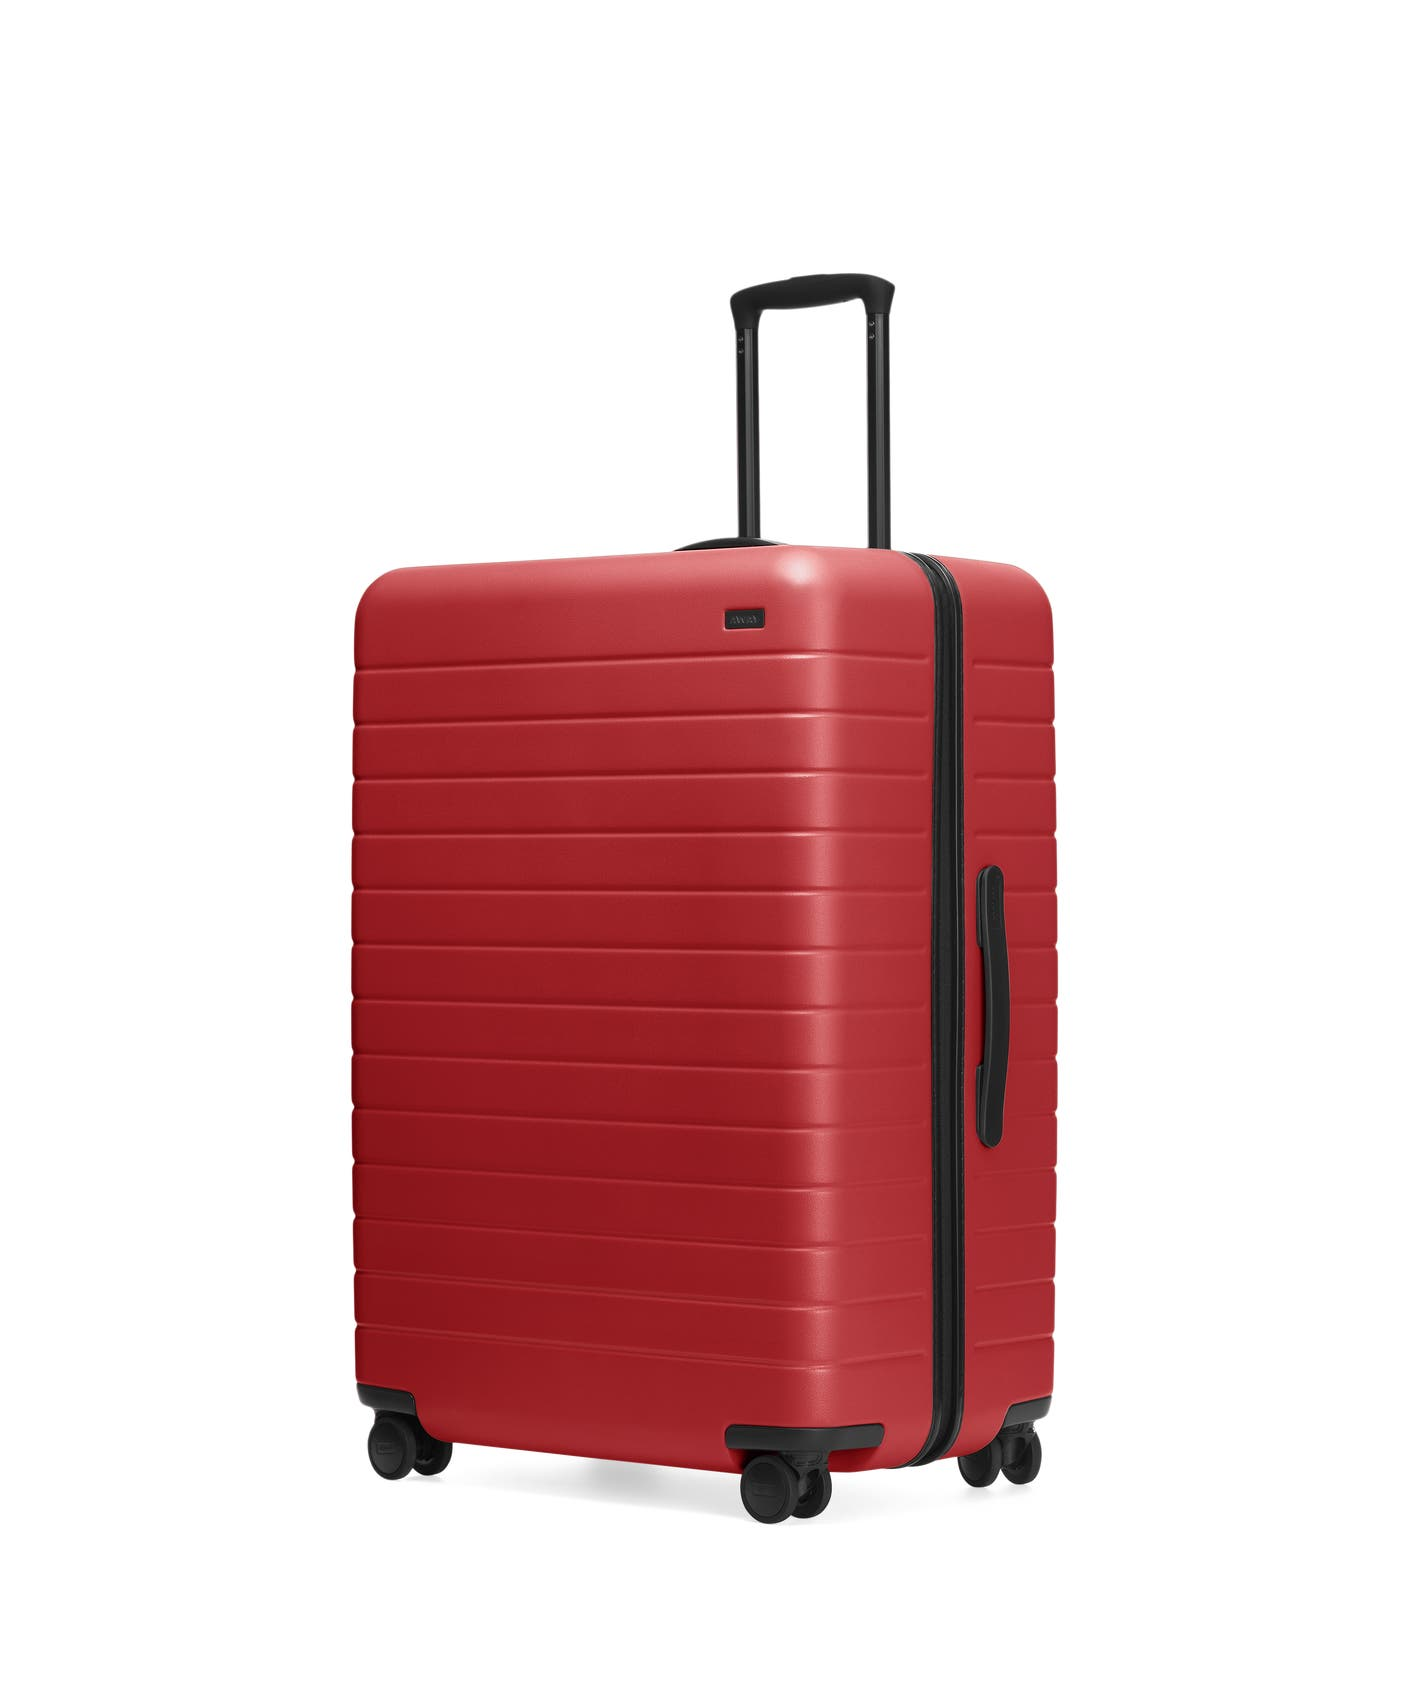 Red hardside Large with raised telescopic handles shown at an angle.